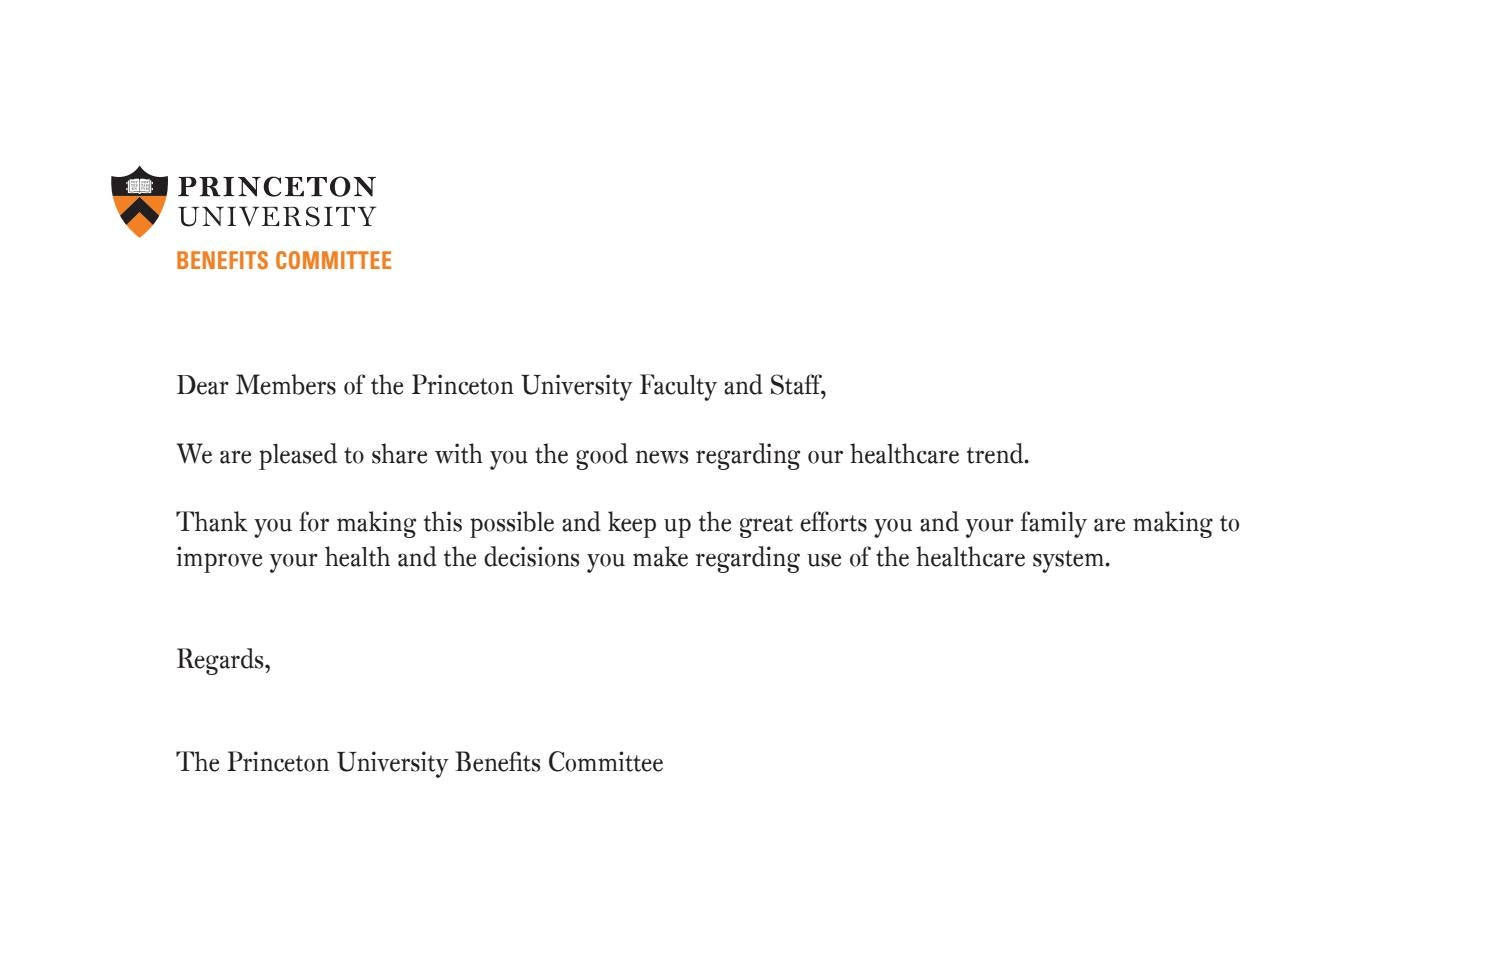 Benefits committee cover letter 2017 by princeton for Cover letter for benefit cosmetics